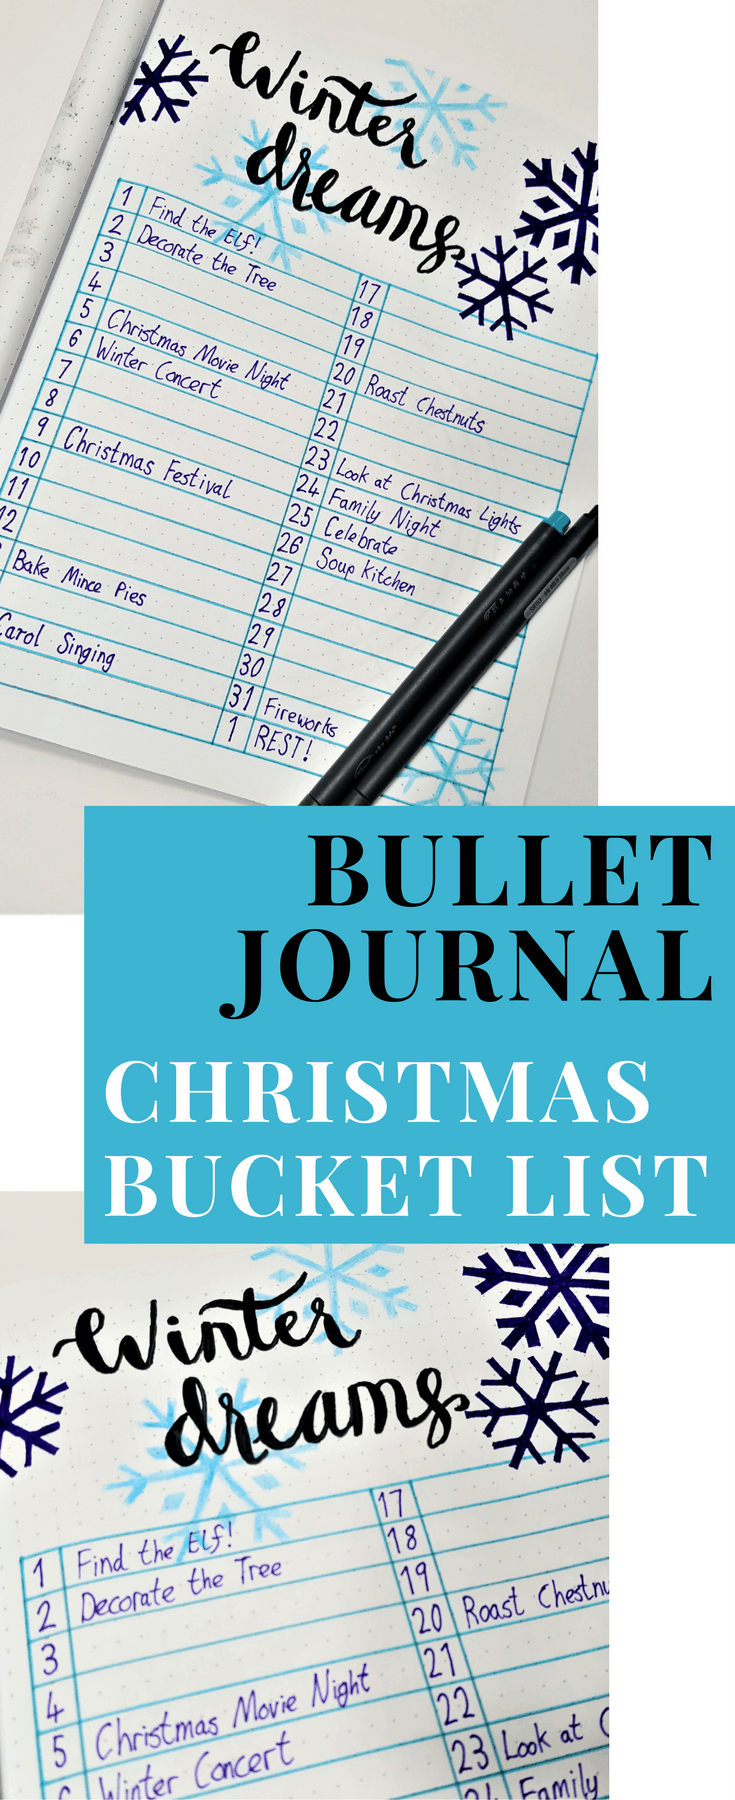 Christmas Bullet Journal   Getting ready for December and the Holiday Season with these useful Christmas BuJo spreads! Keep organized and stay sane this holiday season with Bullet Journals!